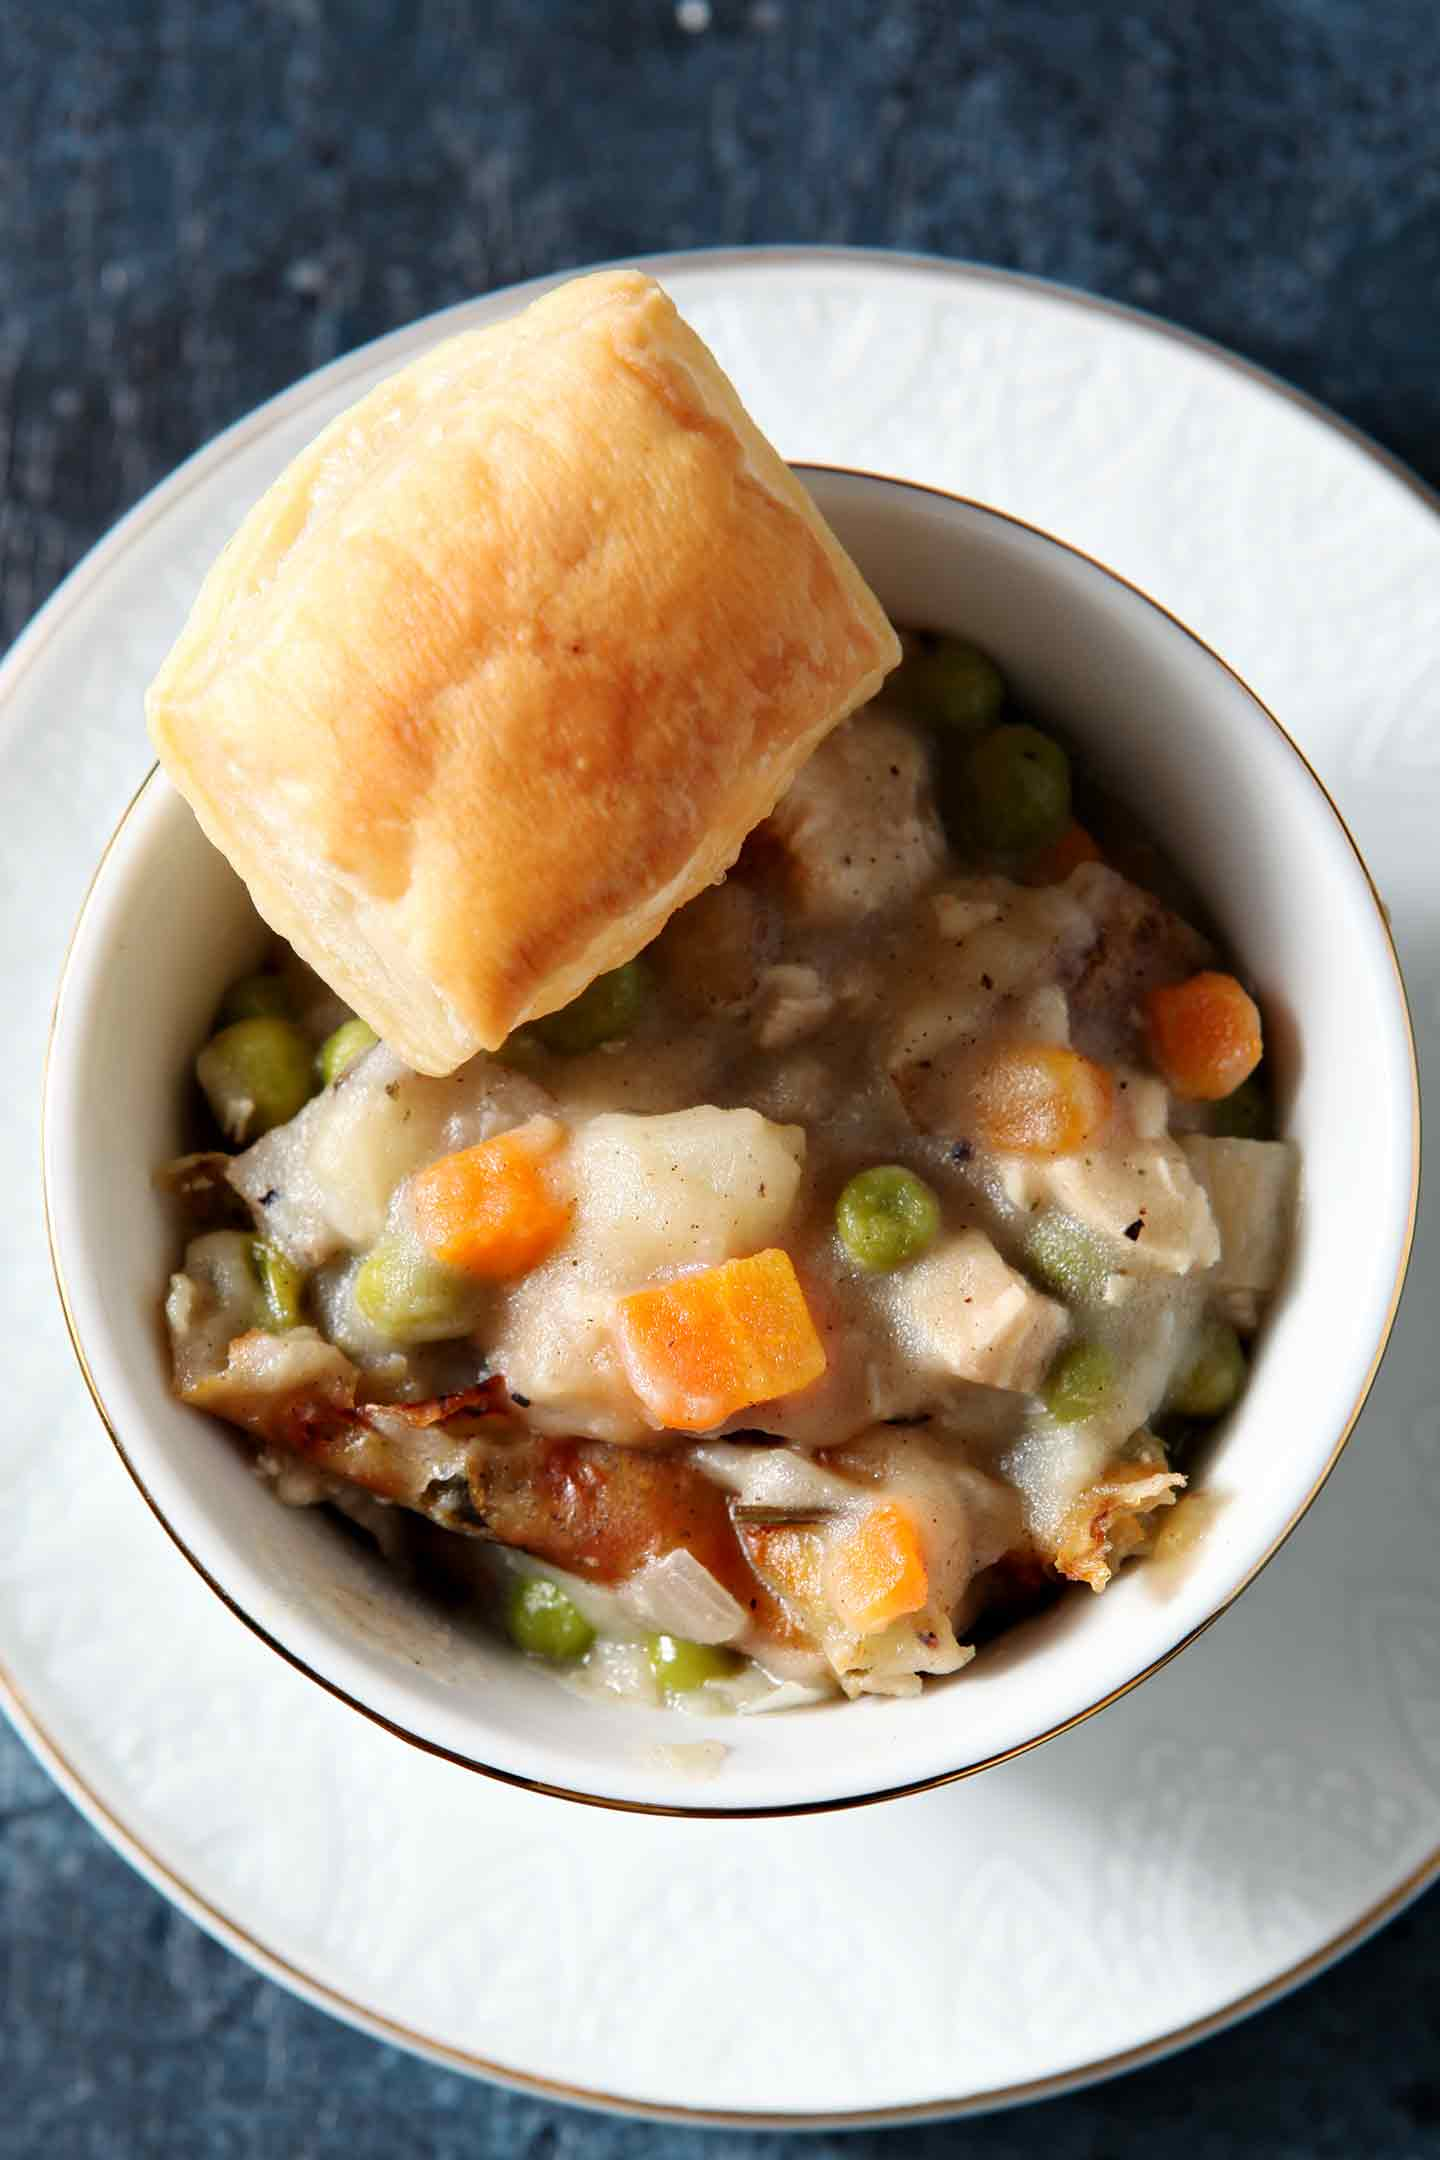 Overhead photo of an individual bowl of Homemade Chicken Pot Pie with a tiny piece of puff pastry on top, displayed on a blue background with the baking dish of pot pie in the background